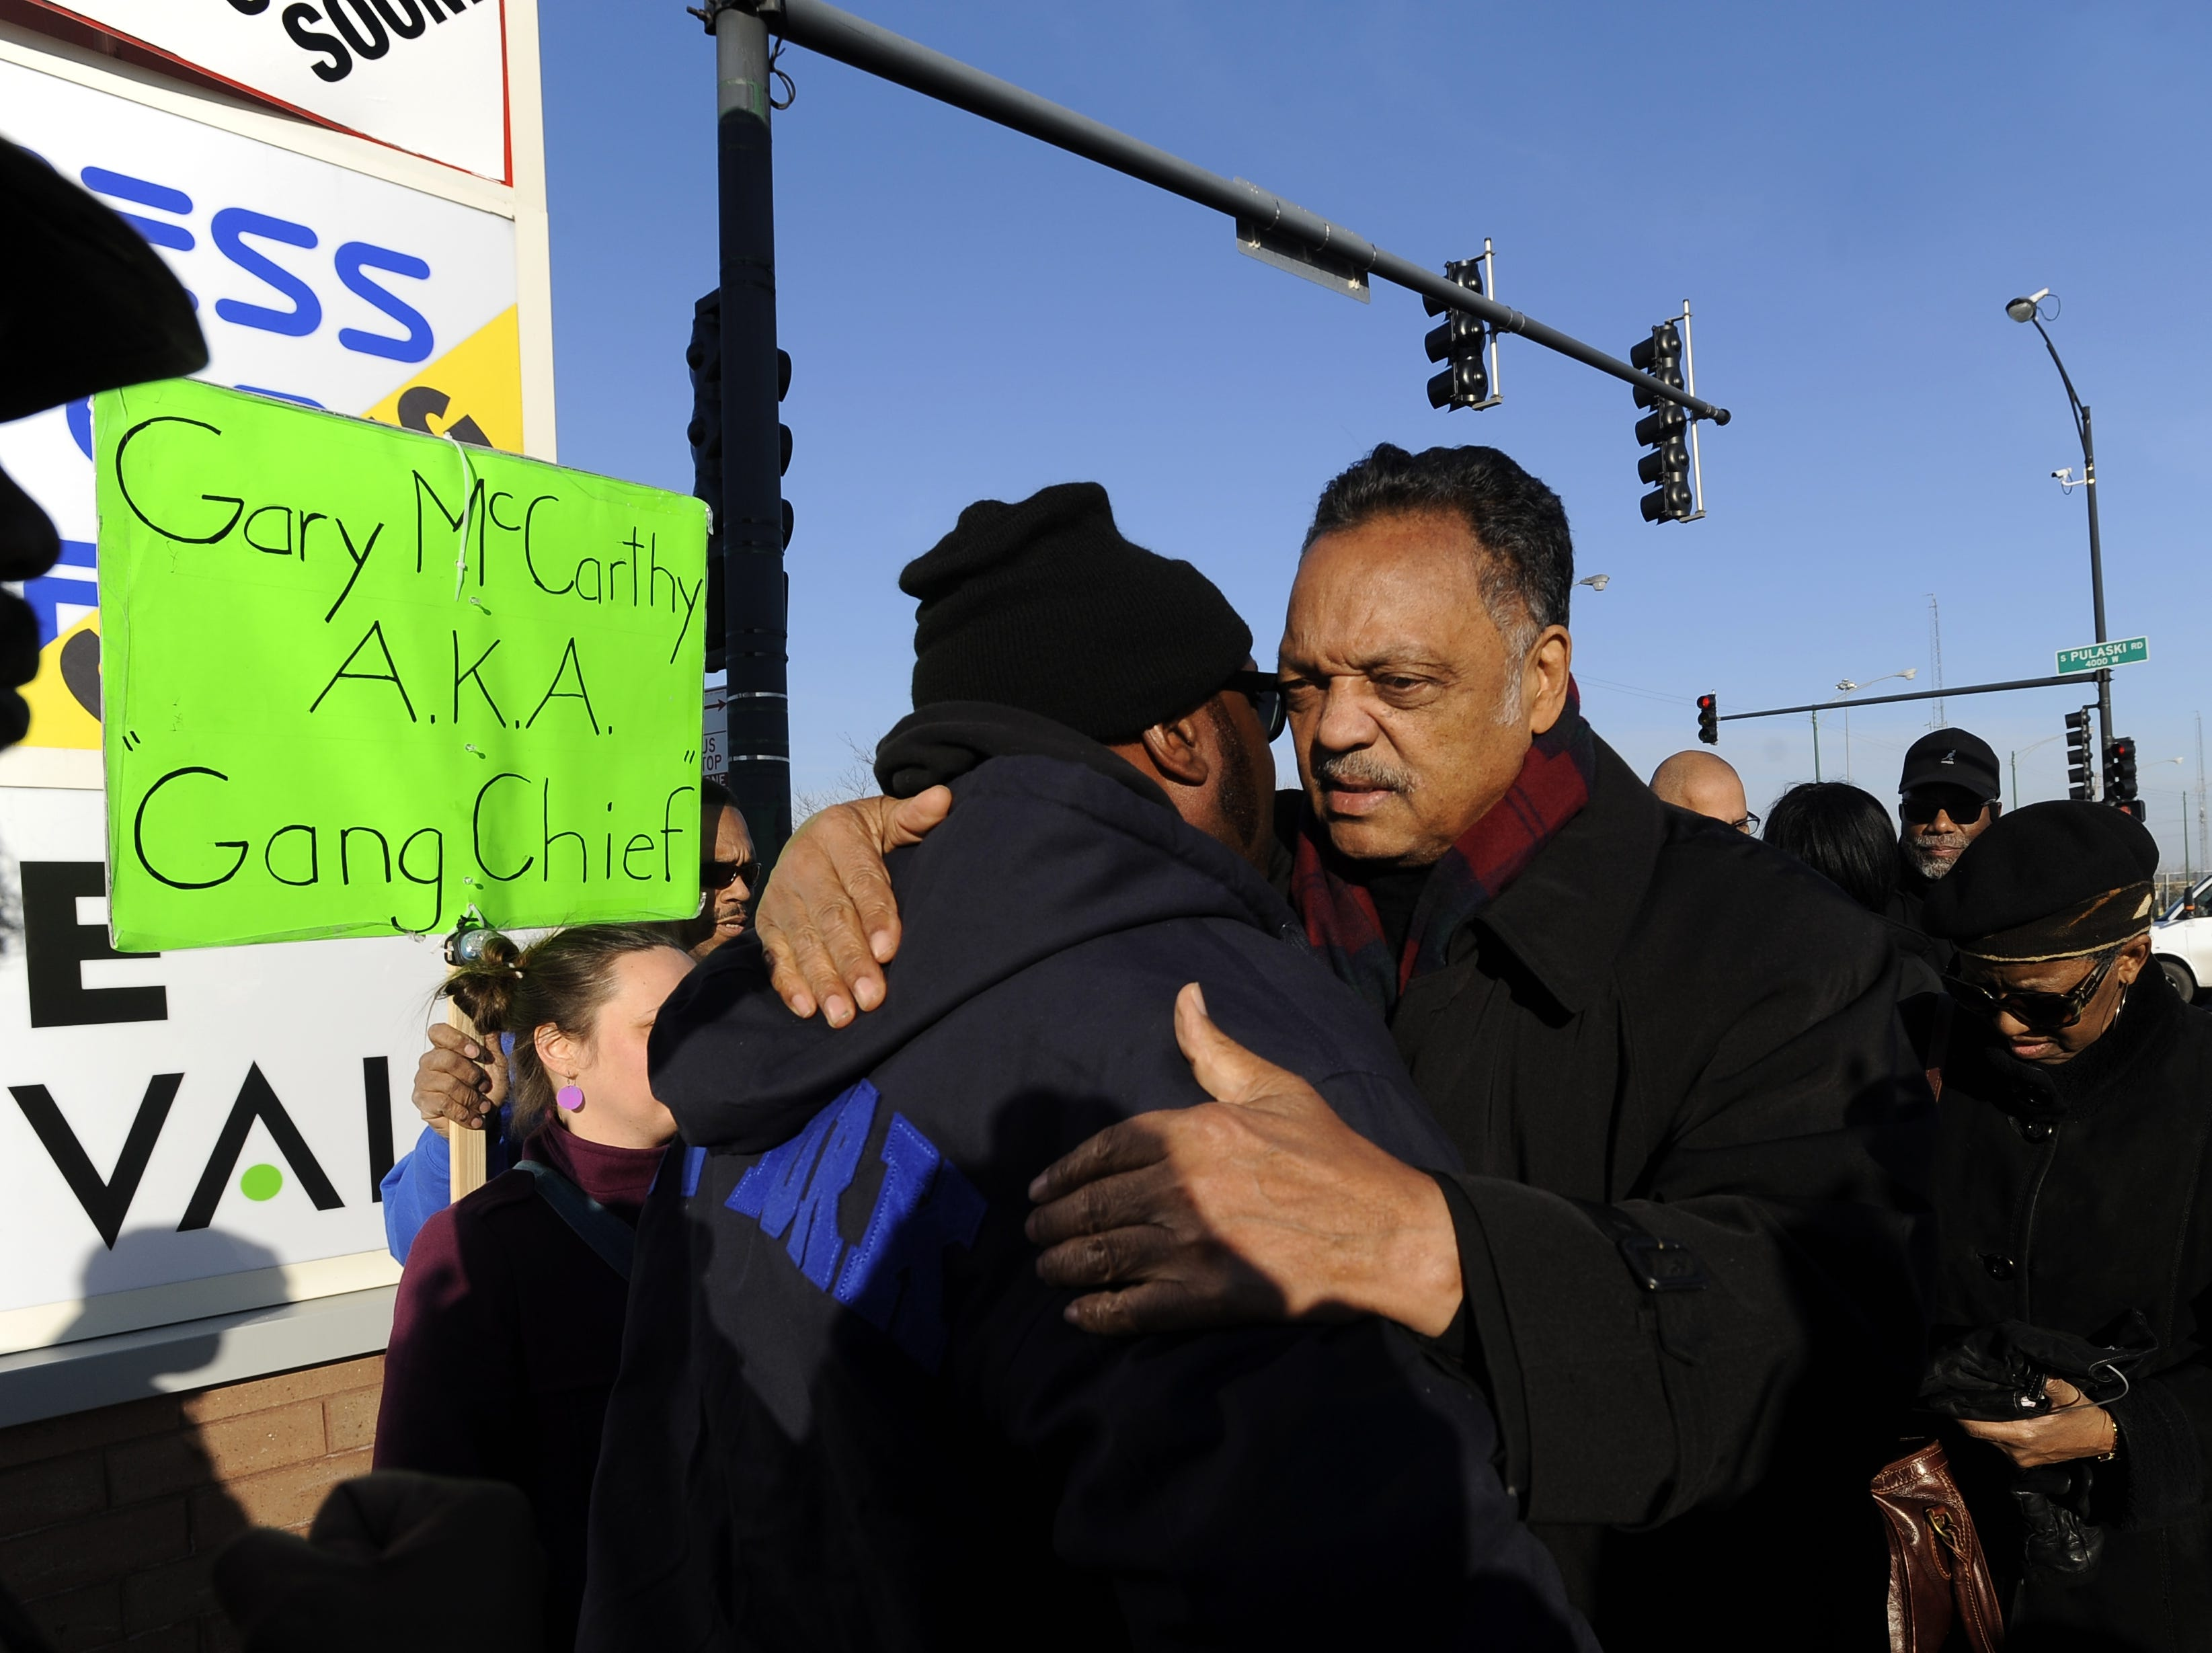 Rev. Jesse Jackson right, hugs Fred Hampton Jr., left, after a vigil for 17-year-old Laquan McDonald, who was fatally shot and killed Oct. 20, 2014 in Chicago. Chicago police Officer Jason Van Dyke was charged Tuesday, Nov. 24, 2015, with first degree murder in the killing.  Hampton's father Fred Hampton Sr. was the Illinois chapter President of the Black Panther Party and was shot and killed in 1969.